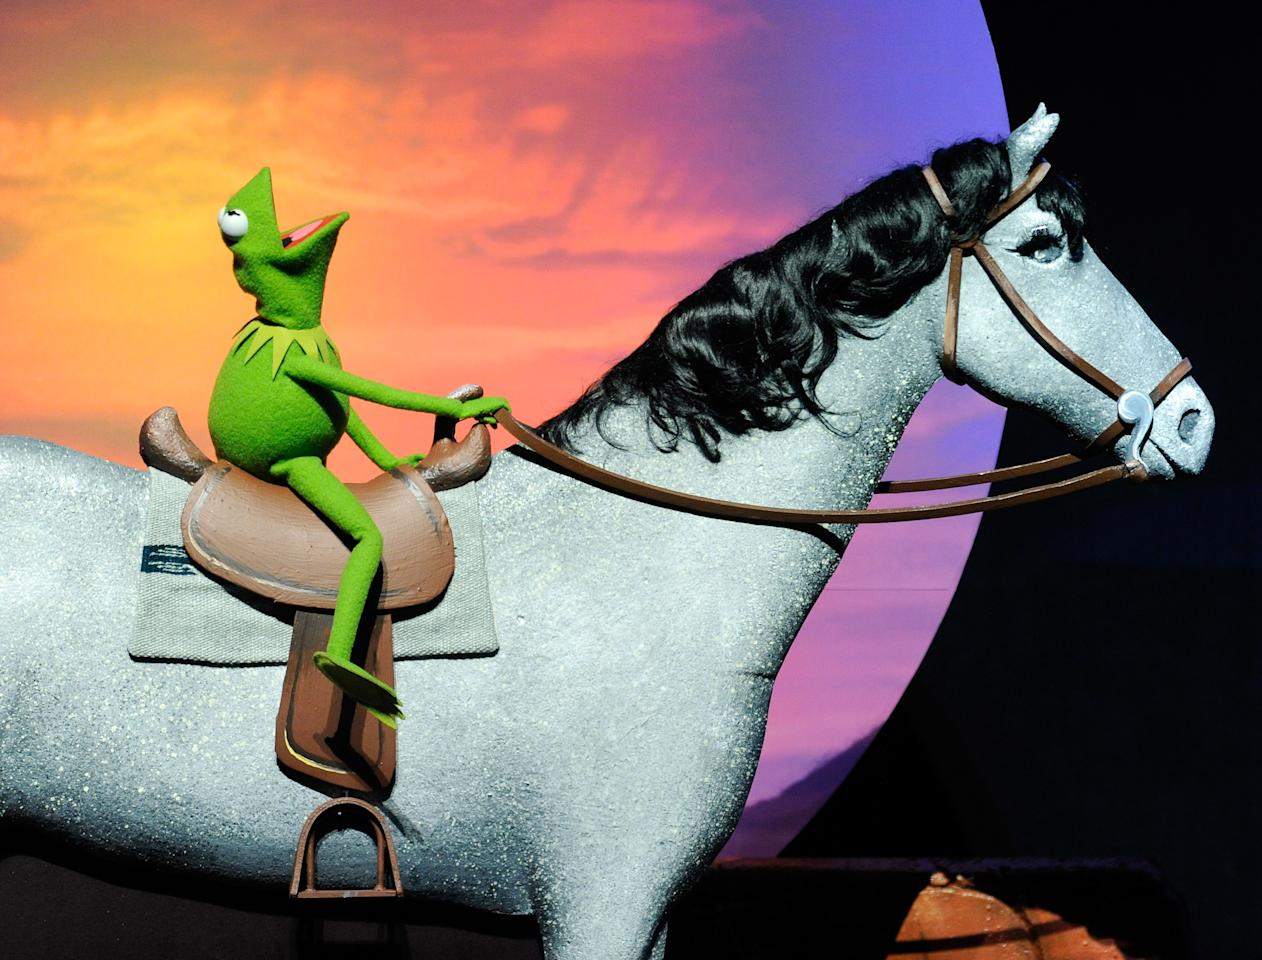 """LAS VEGAS, NV - APRIL 24:  A Kermit the Frog character appears on stage during an announcement that there will be a """"Muppets 2"""" movie at a Walt Disney Studios Motion Pictures presentation at The Colosseum at Caesars Palace during CinemaCon, the official convention of the National Association of Theatre Owners, April 24, 2012 in Las Vegas, Nevada.  (Photo by Ethan Miller/Getty Images)"""